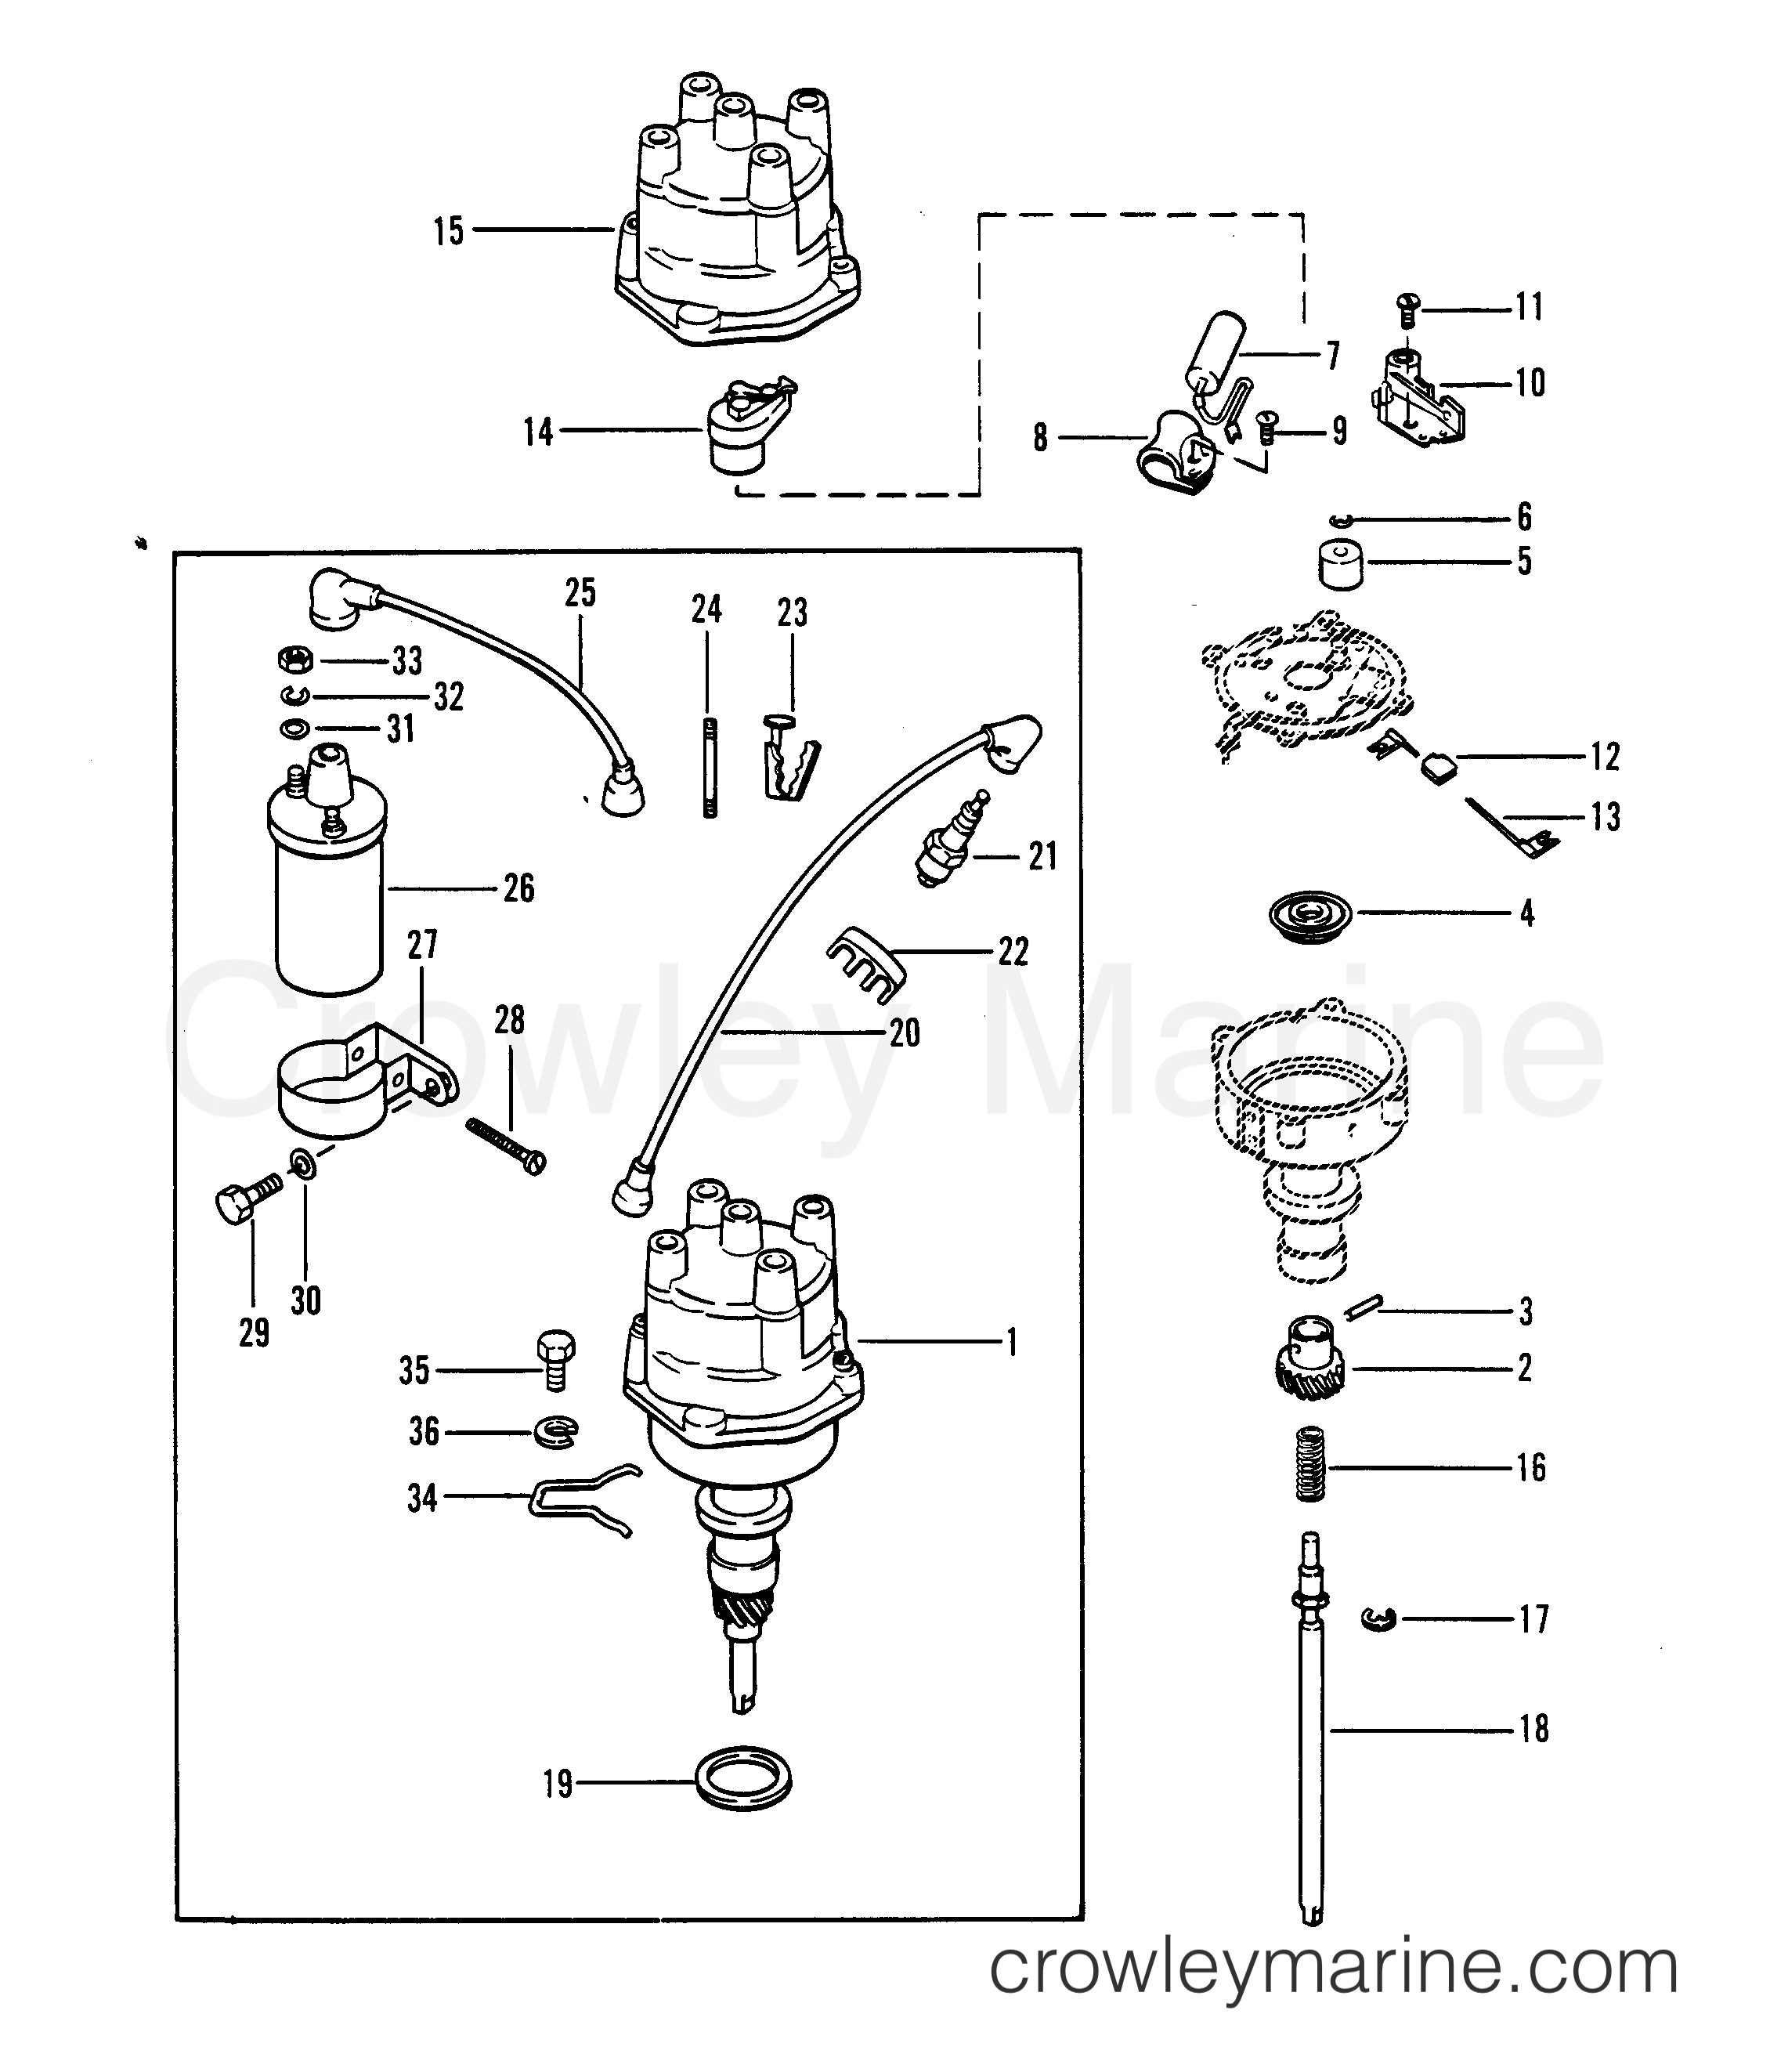 488 mercruiser parts diagram diagram auto wiring diagram 3 Liter Mercruiser Engine Diagram Mercruiser 3.7 Cooling Diagram